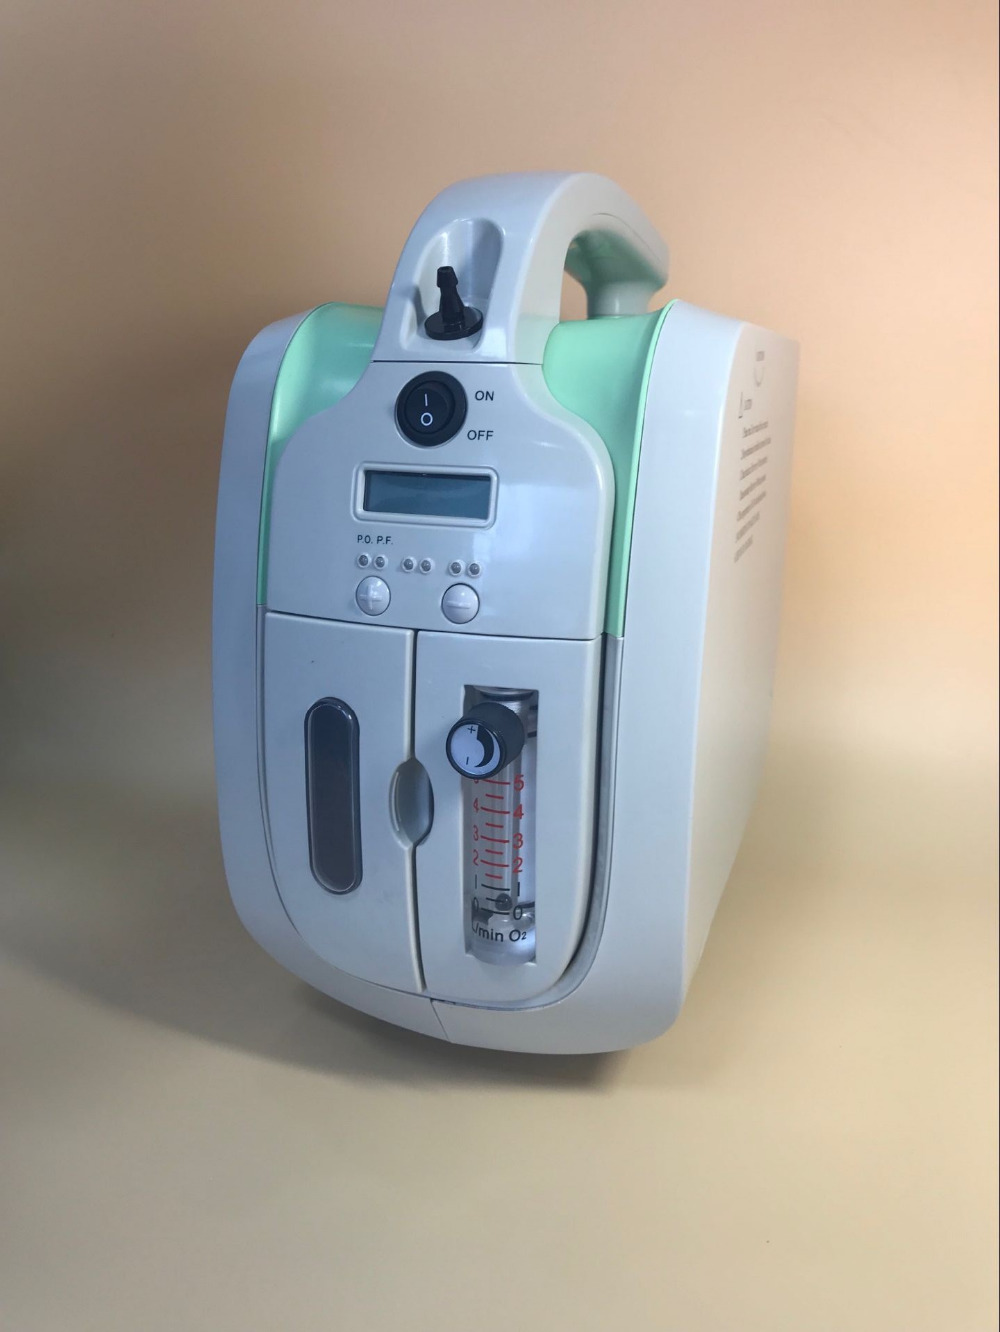 COXTOD Oxygen Concentrator Medical Generator Continuous O2 Supply Machine Home Hospital Mini Oxygen Generator 110VCOXTOD Oxygen Concentrator Medical Generator Continuous O2 Supply Machine Home Hospital Mini Oxygen Generator 110V